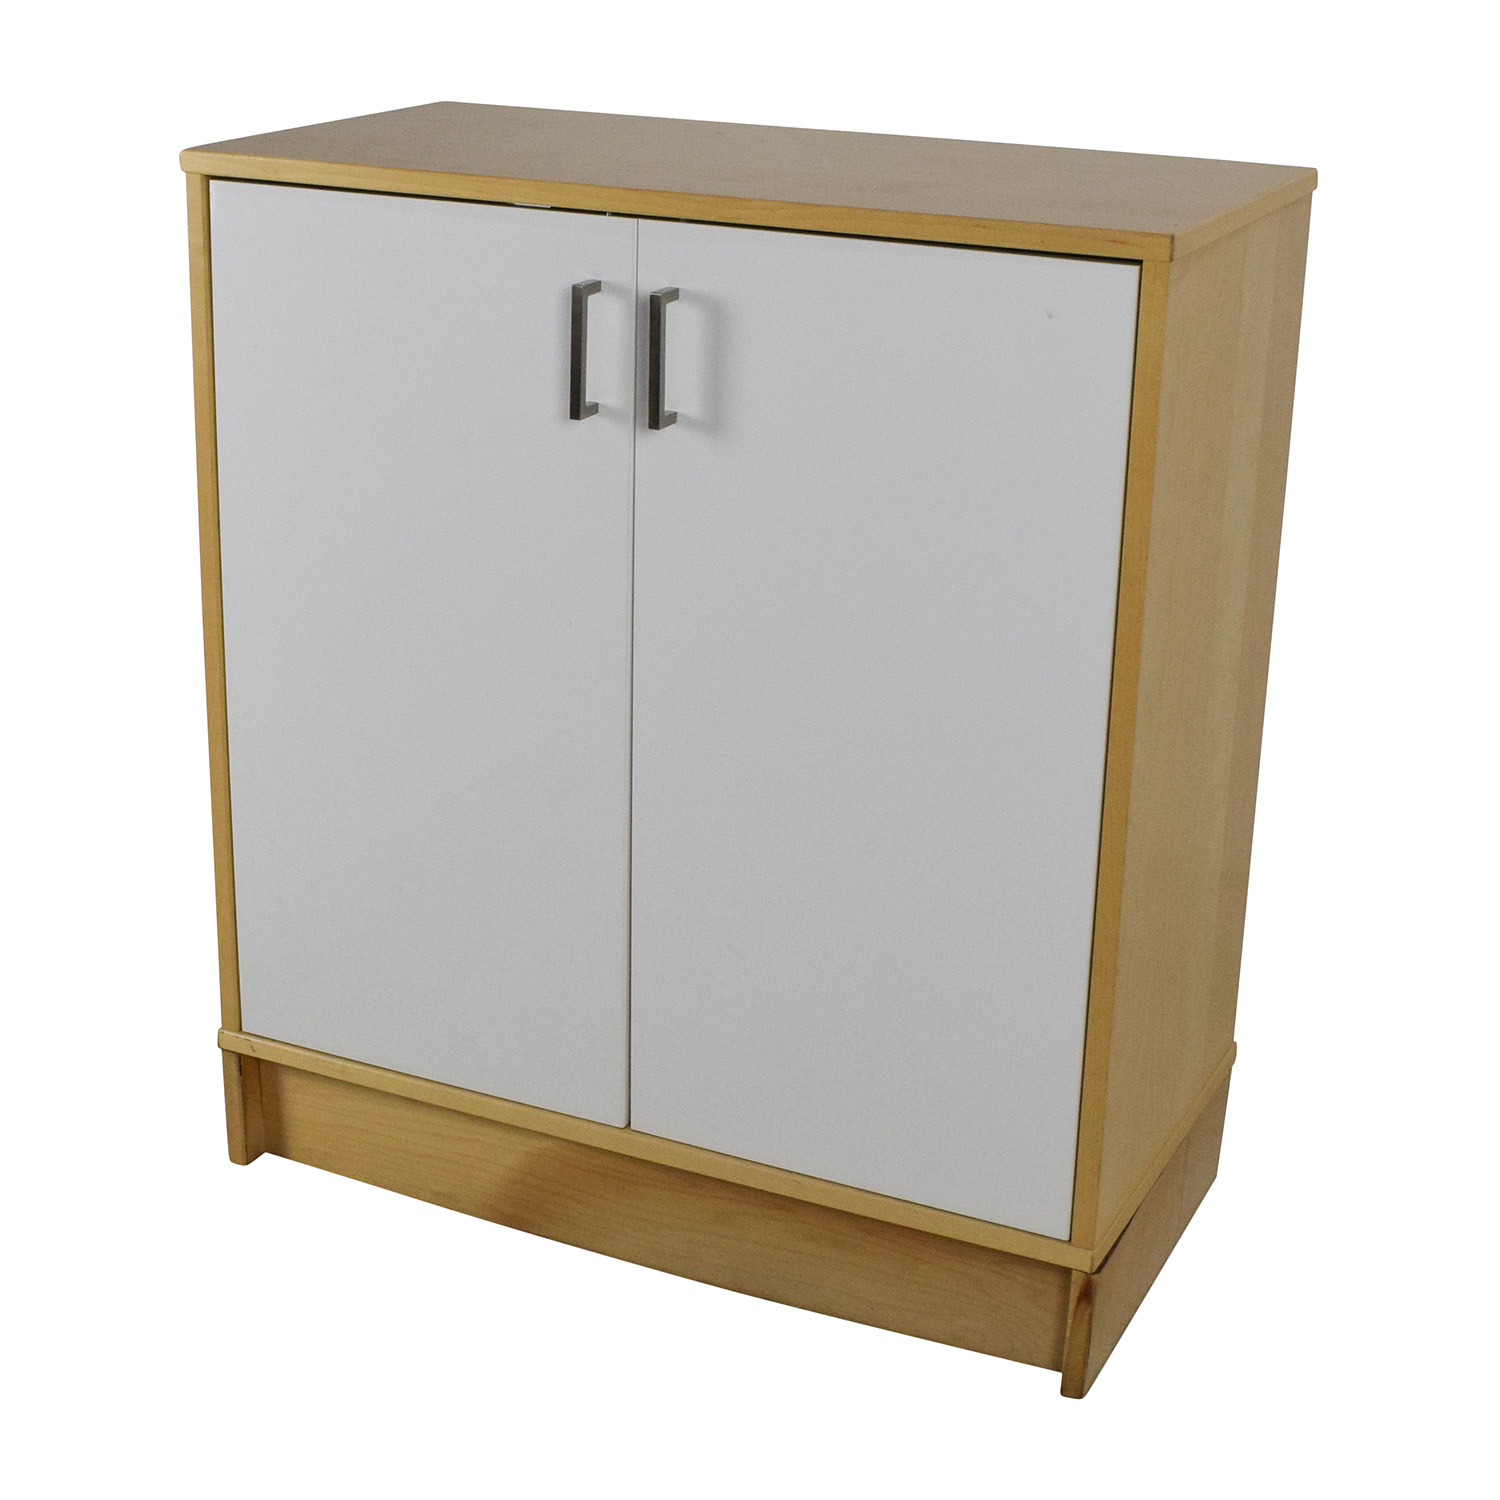 Ikea Wall Storage Units 71% Off - Ikea Ikea Cabinet Unit / Storage